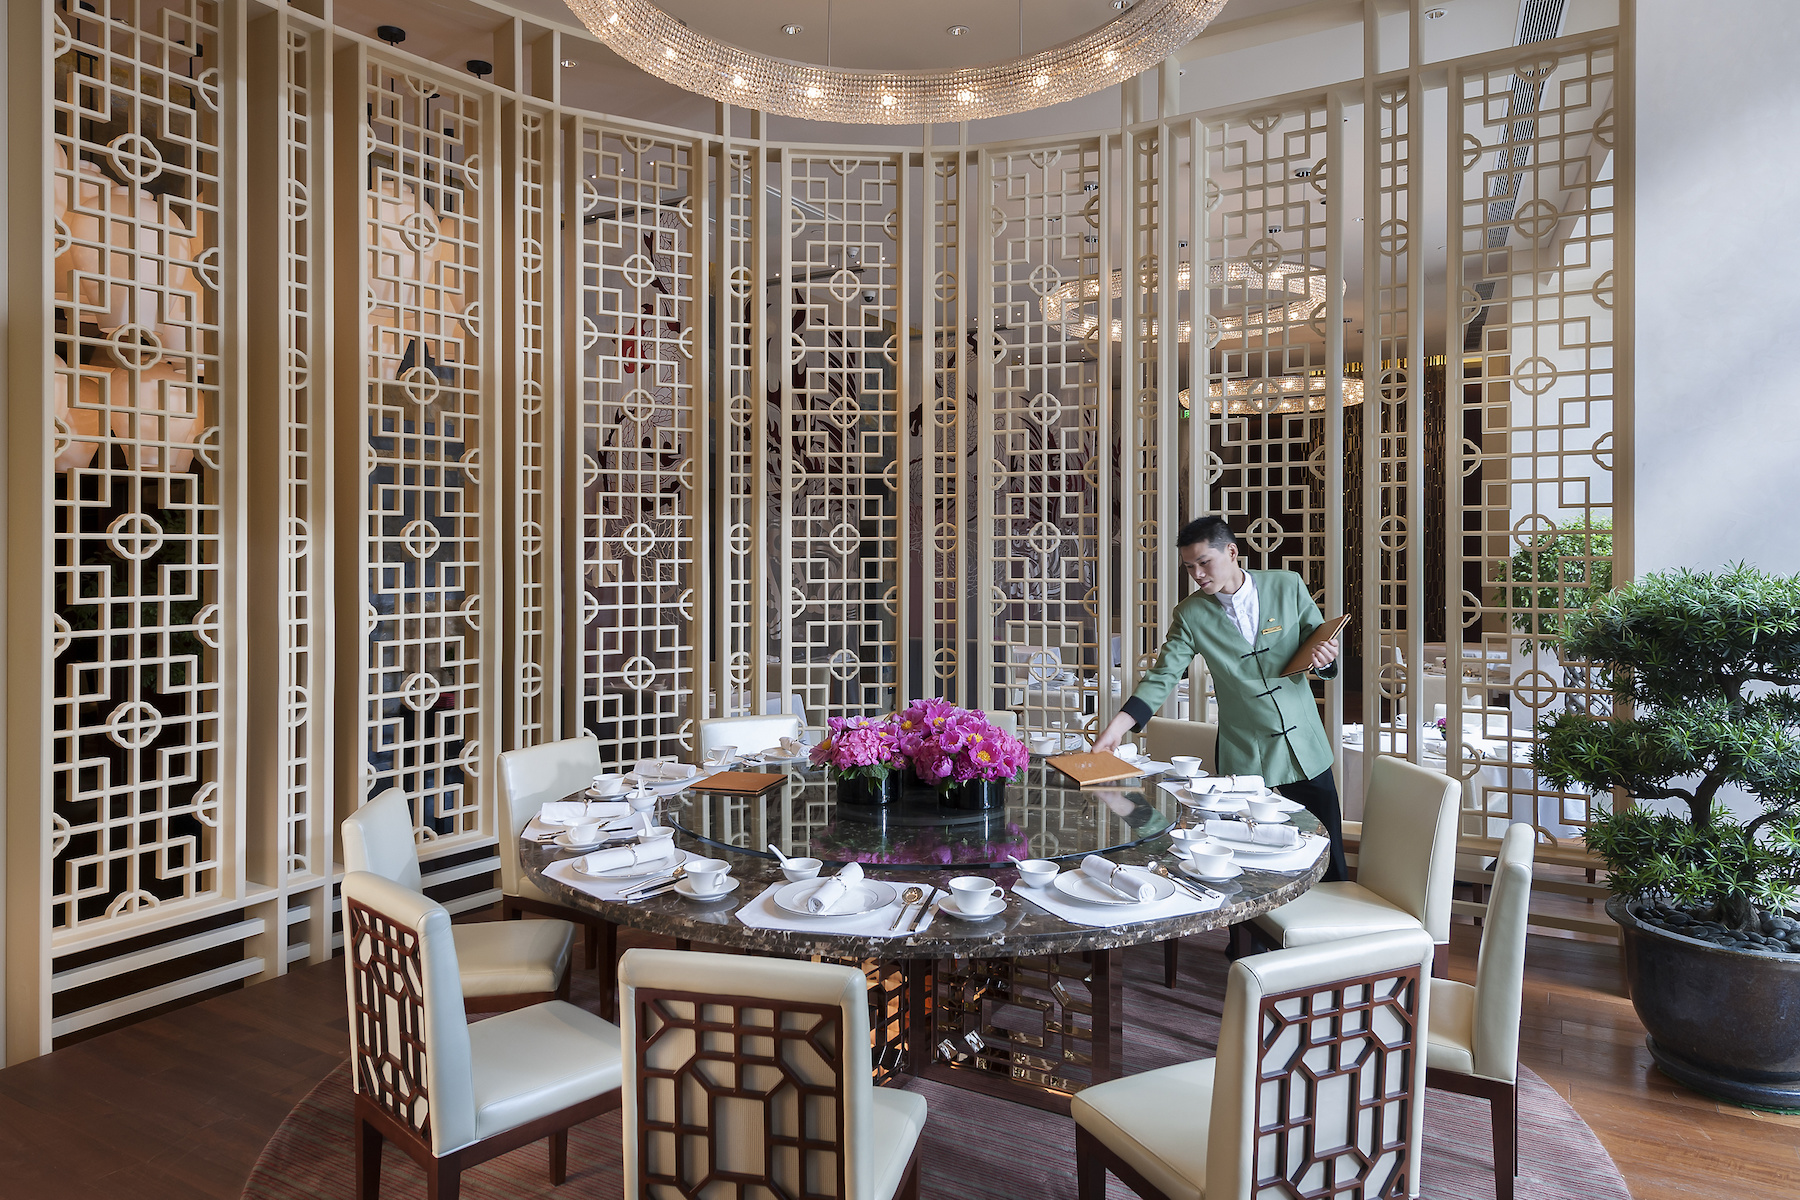 shanghai-fine-dining-yong-yi-ting-private-dining.jpg